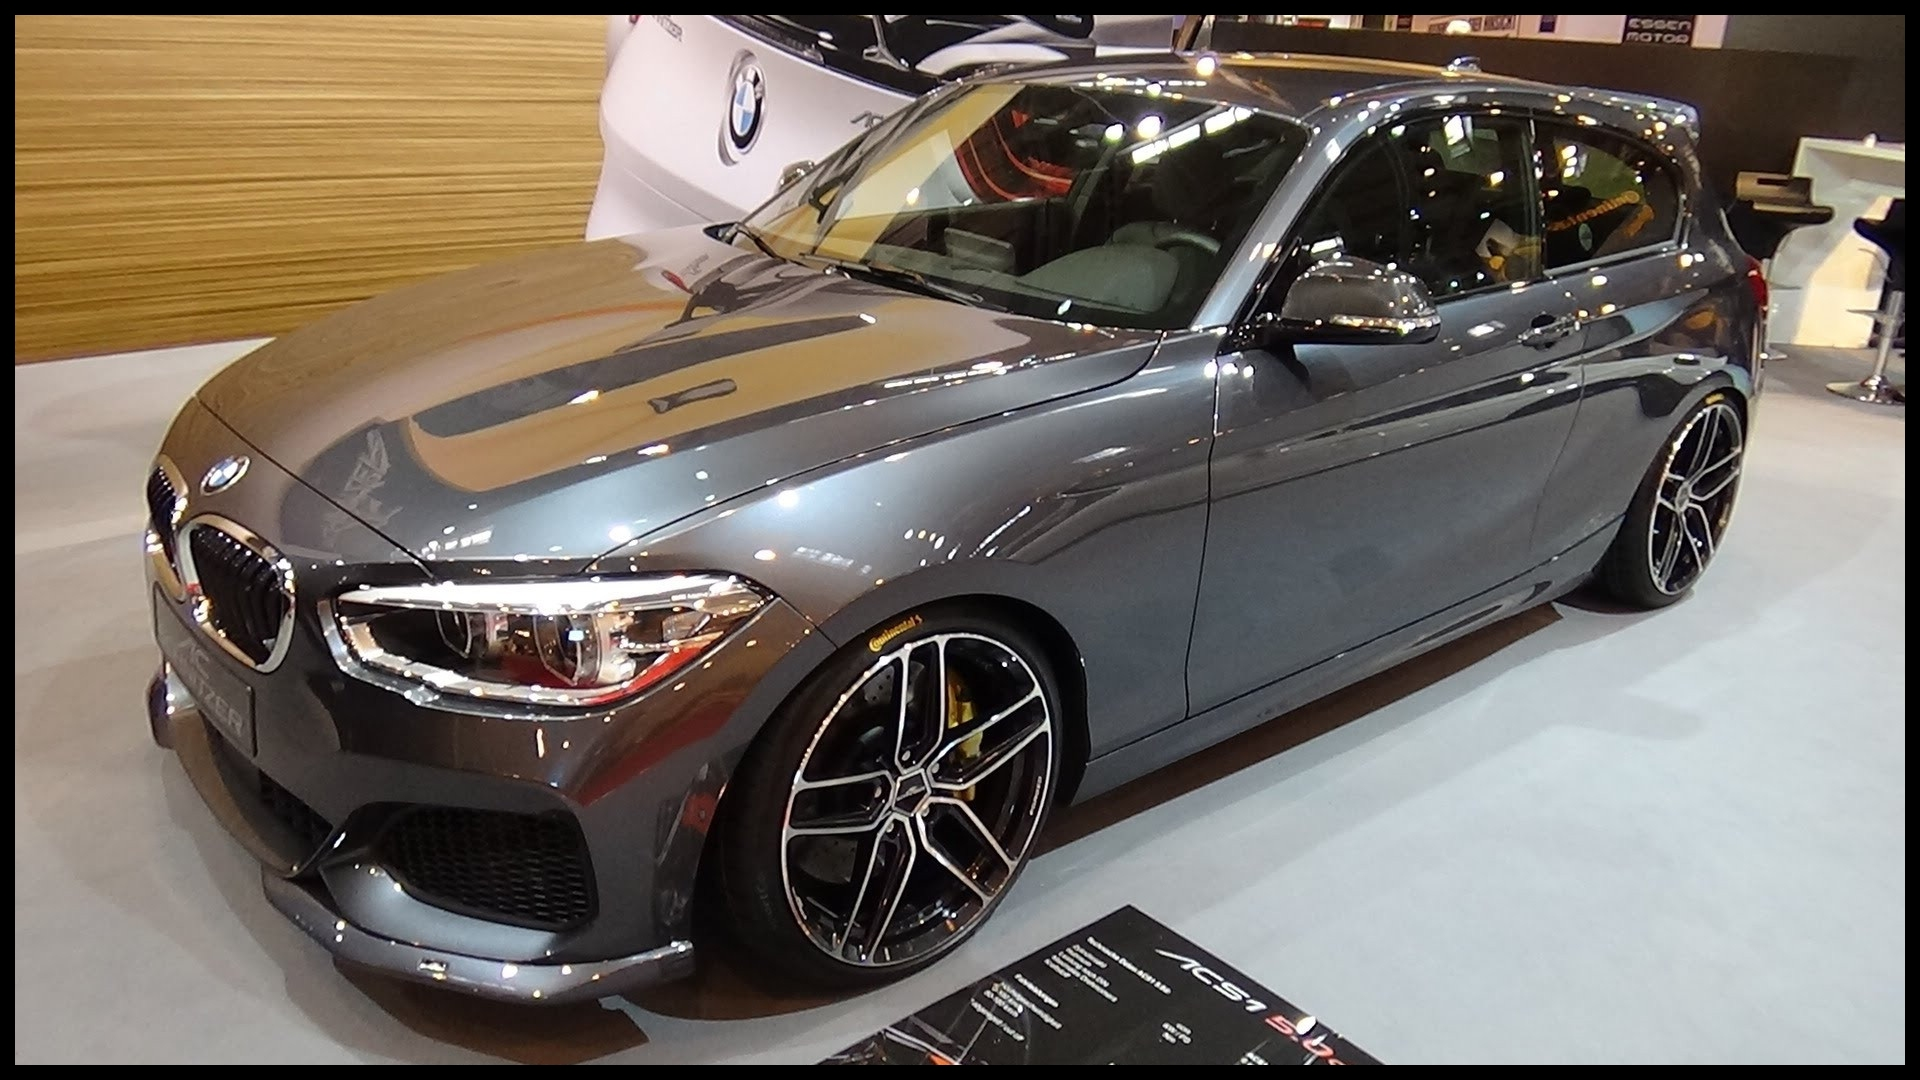 M4 Gran Coupe Luxury Hot Bmw M4 Price 2016 Bmw Acs1 5 0d by Ac Schnitzer